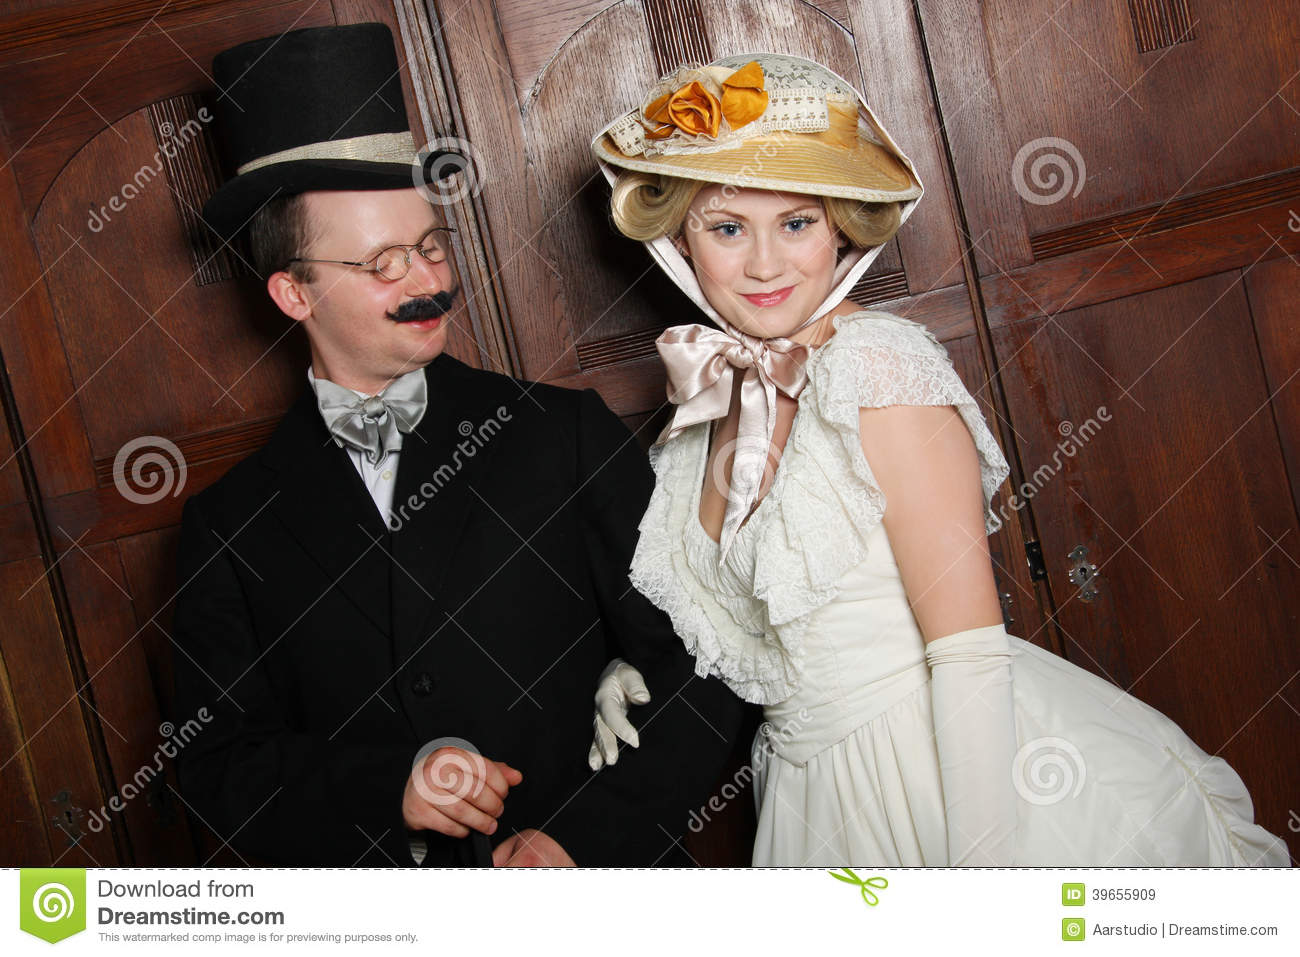 roles of women in the th century couple in th century garment  couple in 19th century garment w in dominant role stock couple in 19th century garment w